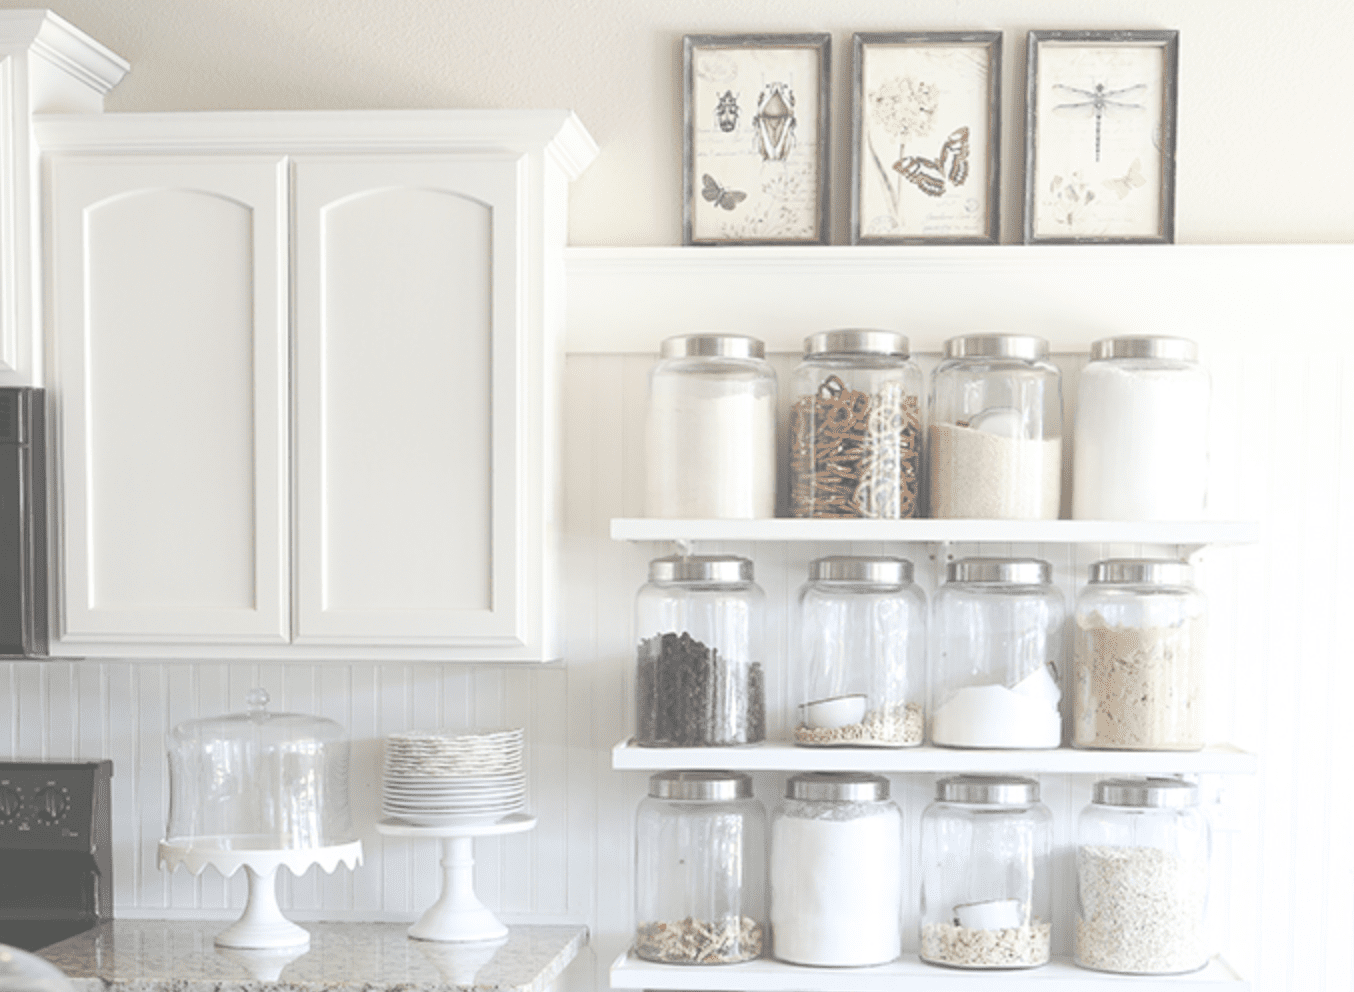 29 Storage Ideas For Your Entire Home